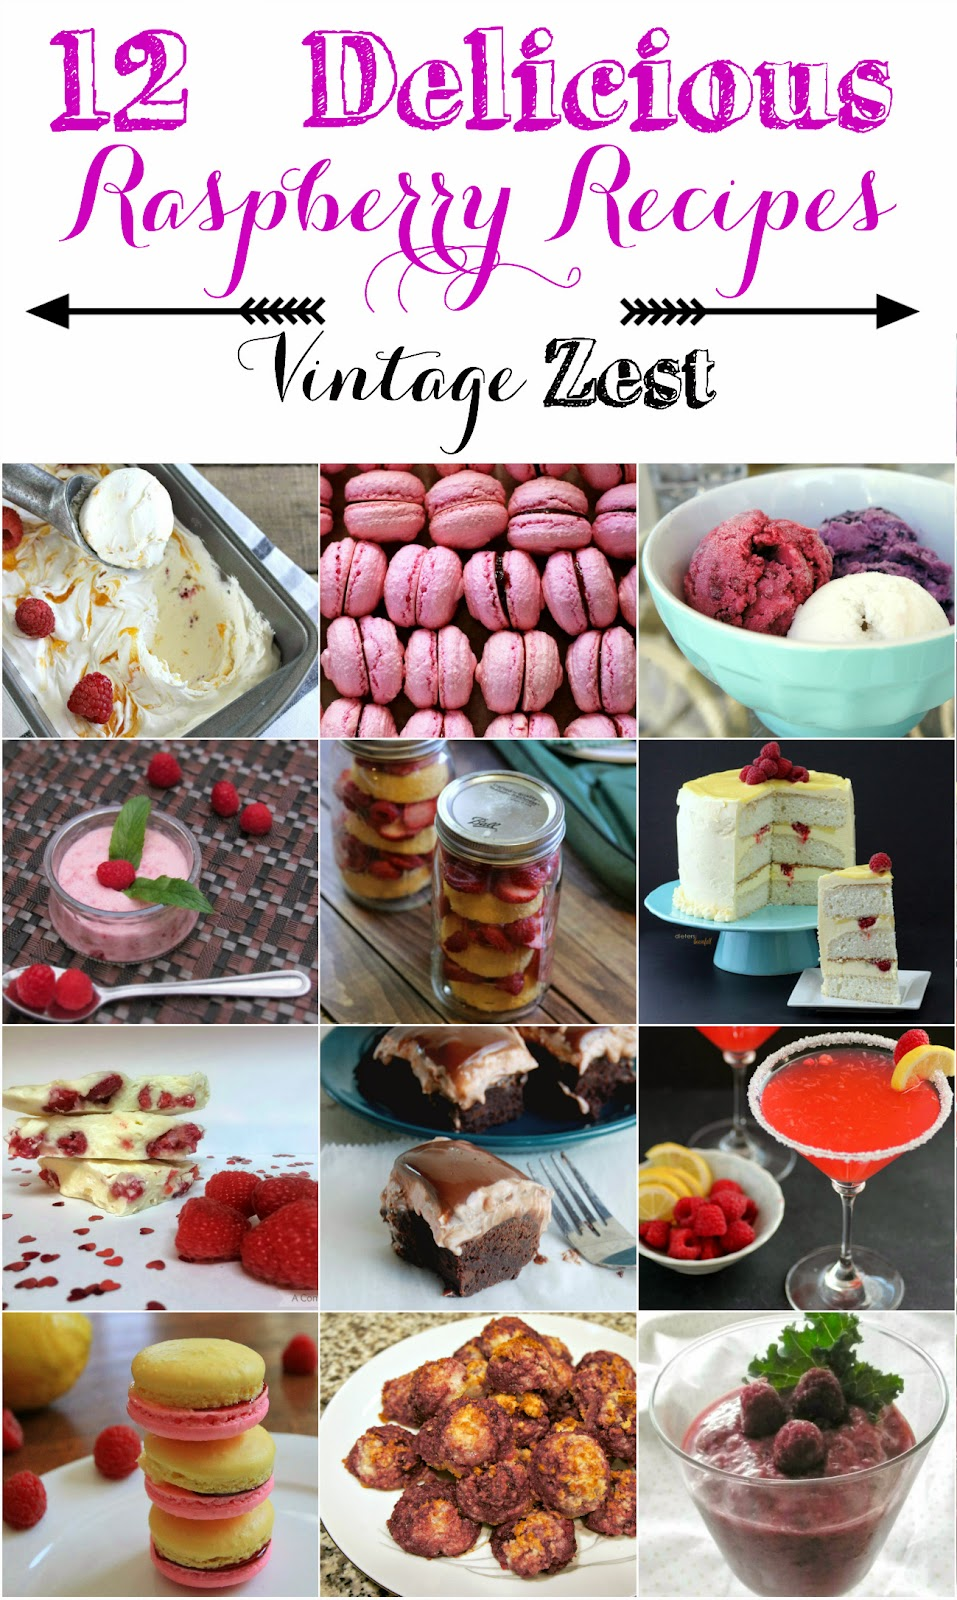 Raspberry Recipe Round-up at Diane's Vintage Zest!